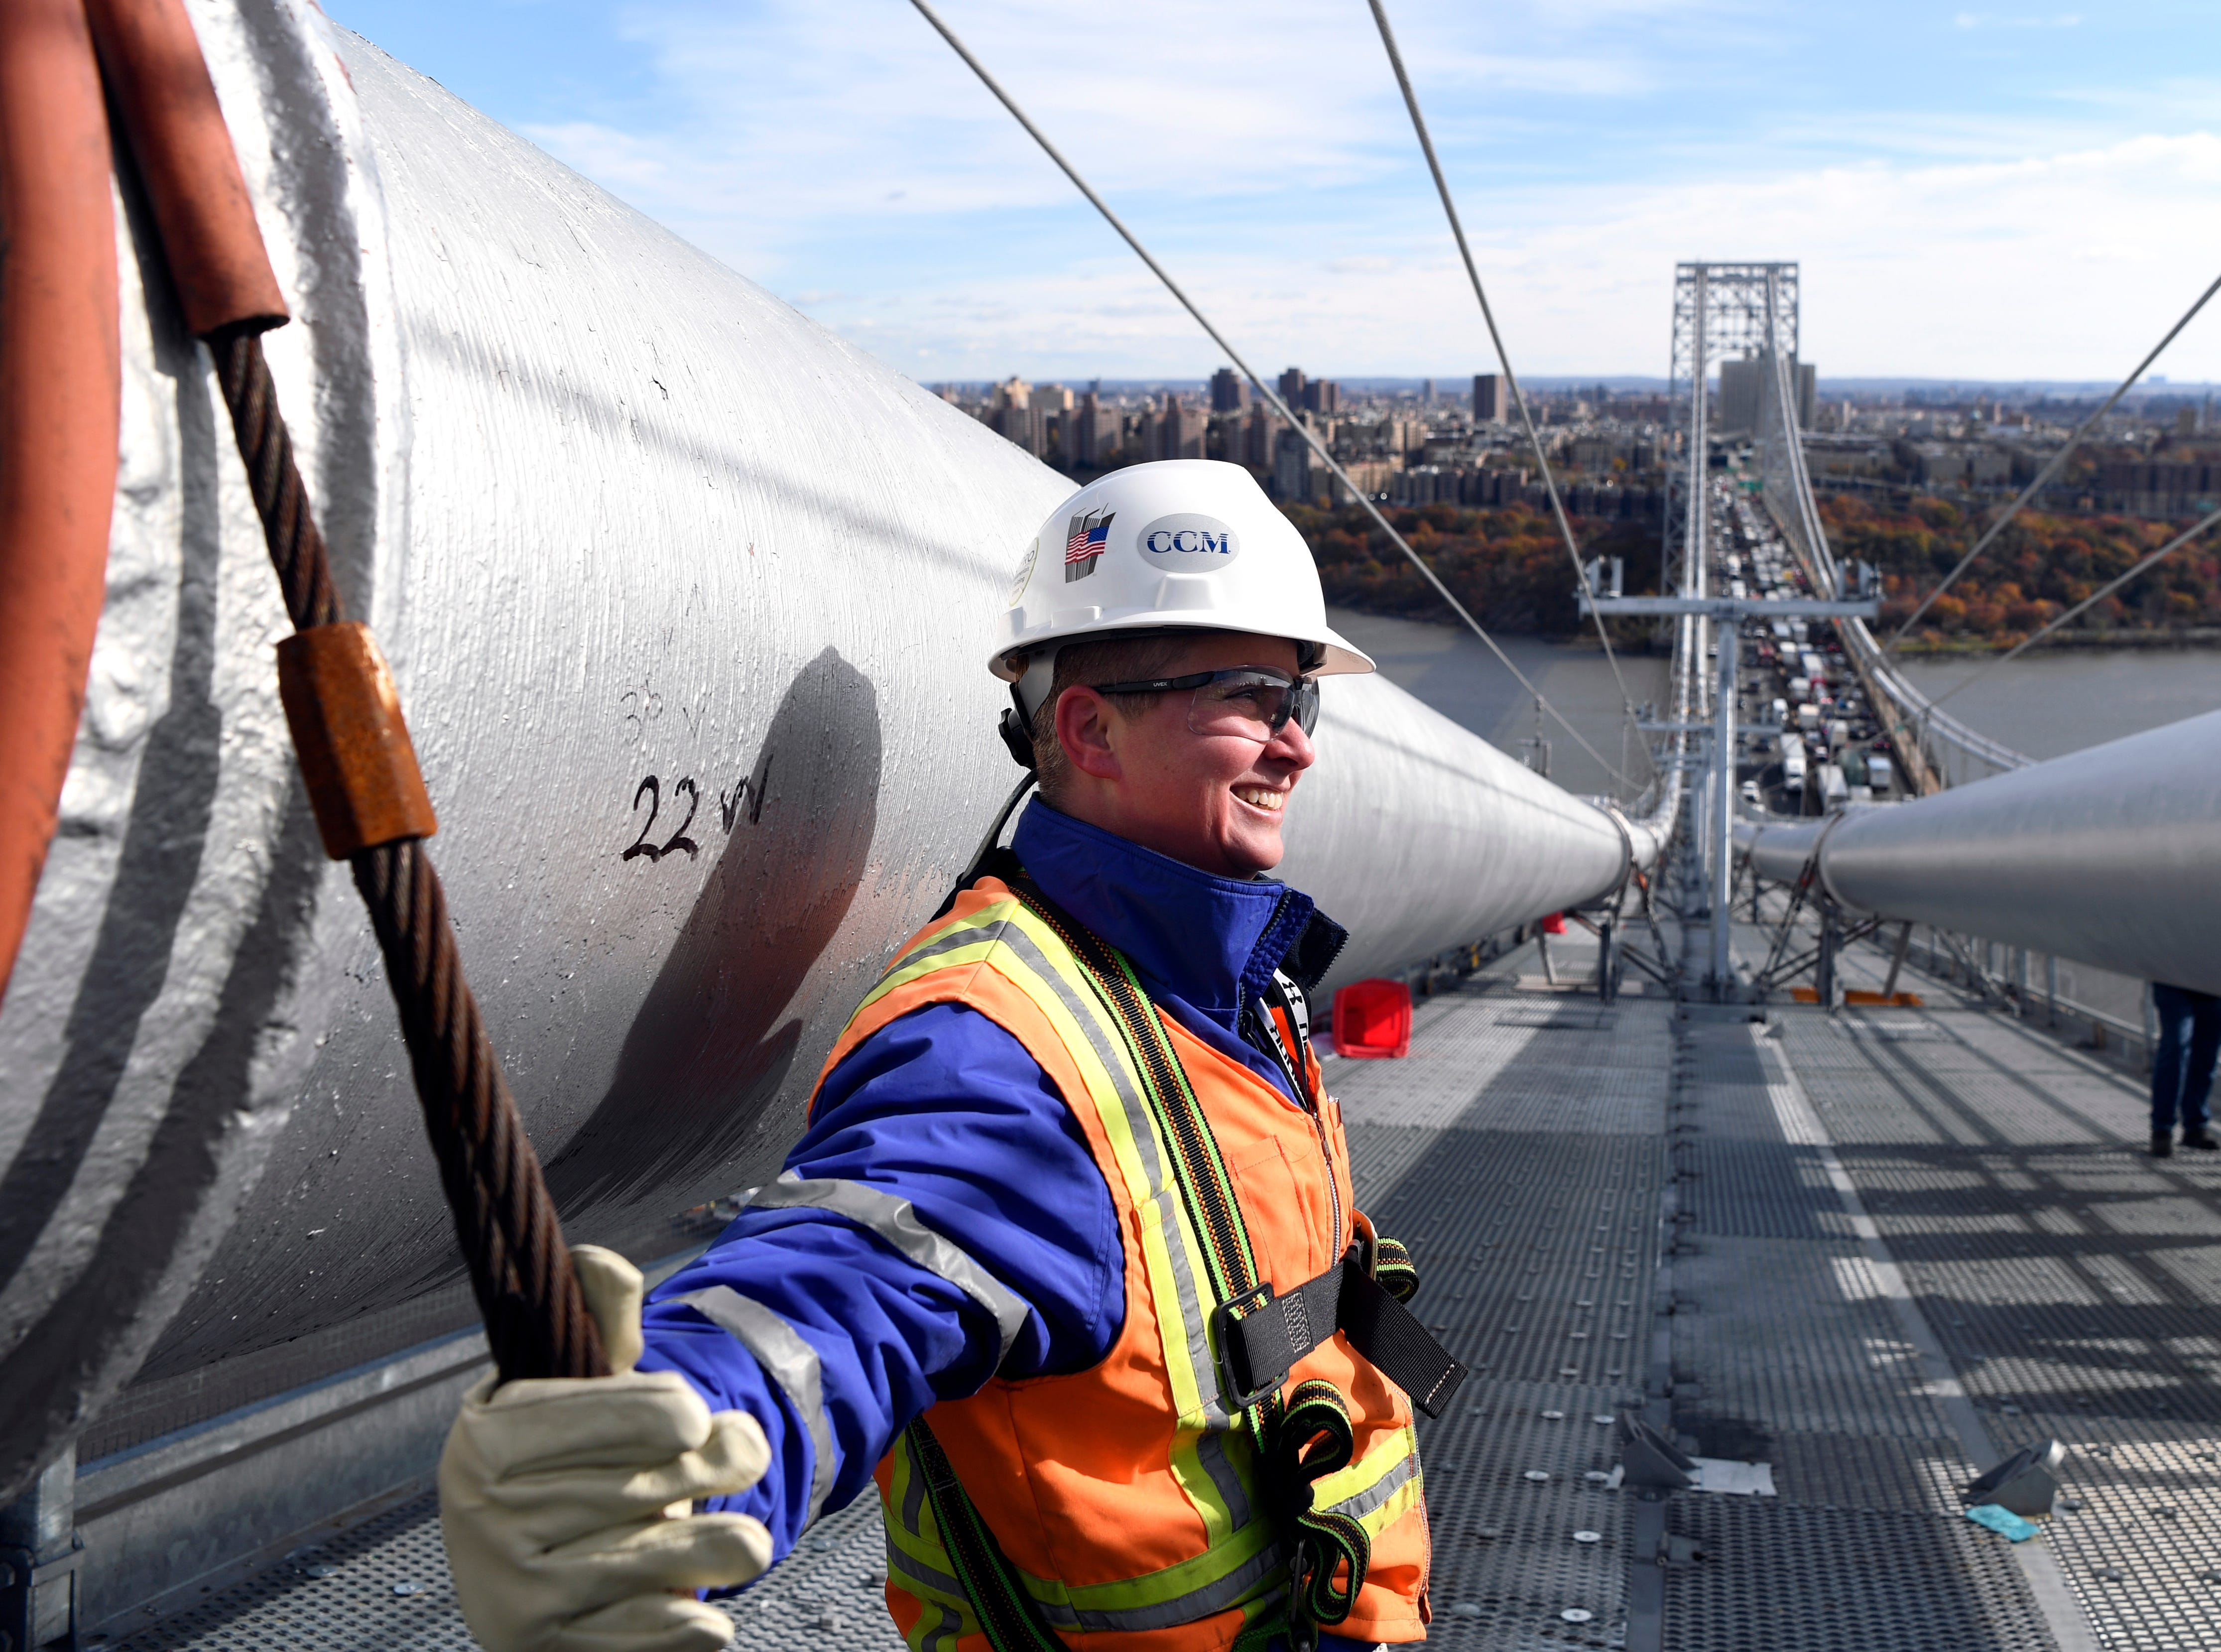 Amanda Rogers, senior engineer of construction, stands on a temporary platform surrounding the main cables of the George Washington Bridge on Wednesday, Nov. 14, 2018.